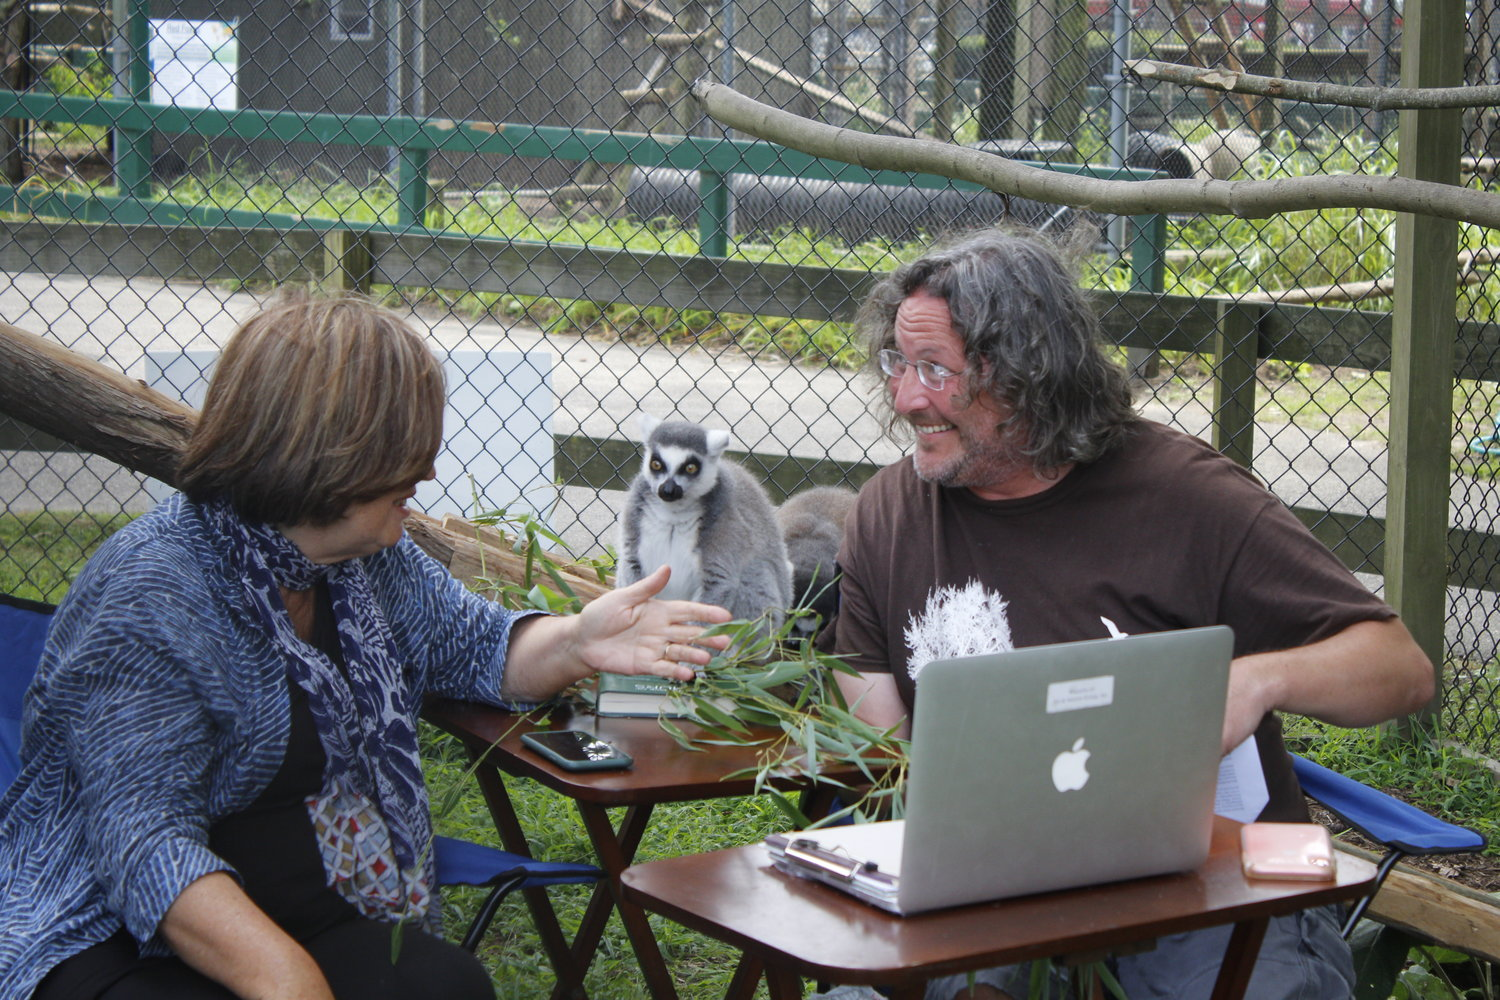 Dr. Patricia Wright, one of the world's most recognized lemur experts, chats with Ranger Eric Powers of CEED inside the Long Island Game Farm lemur enclosure.